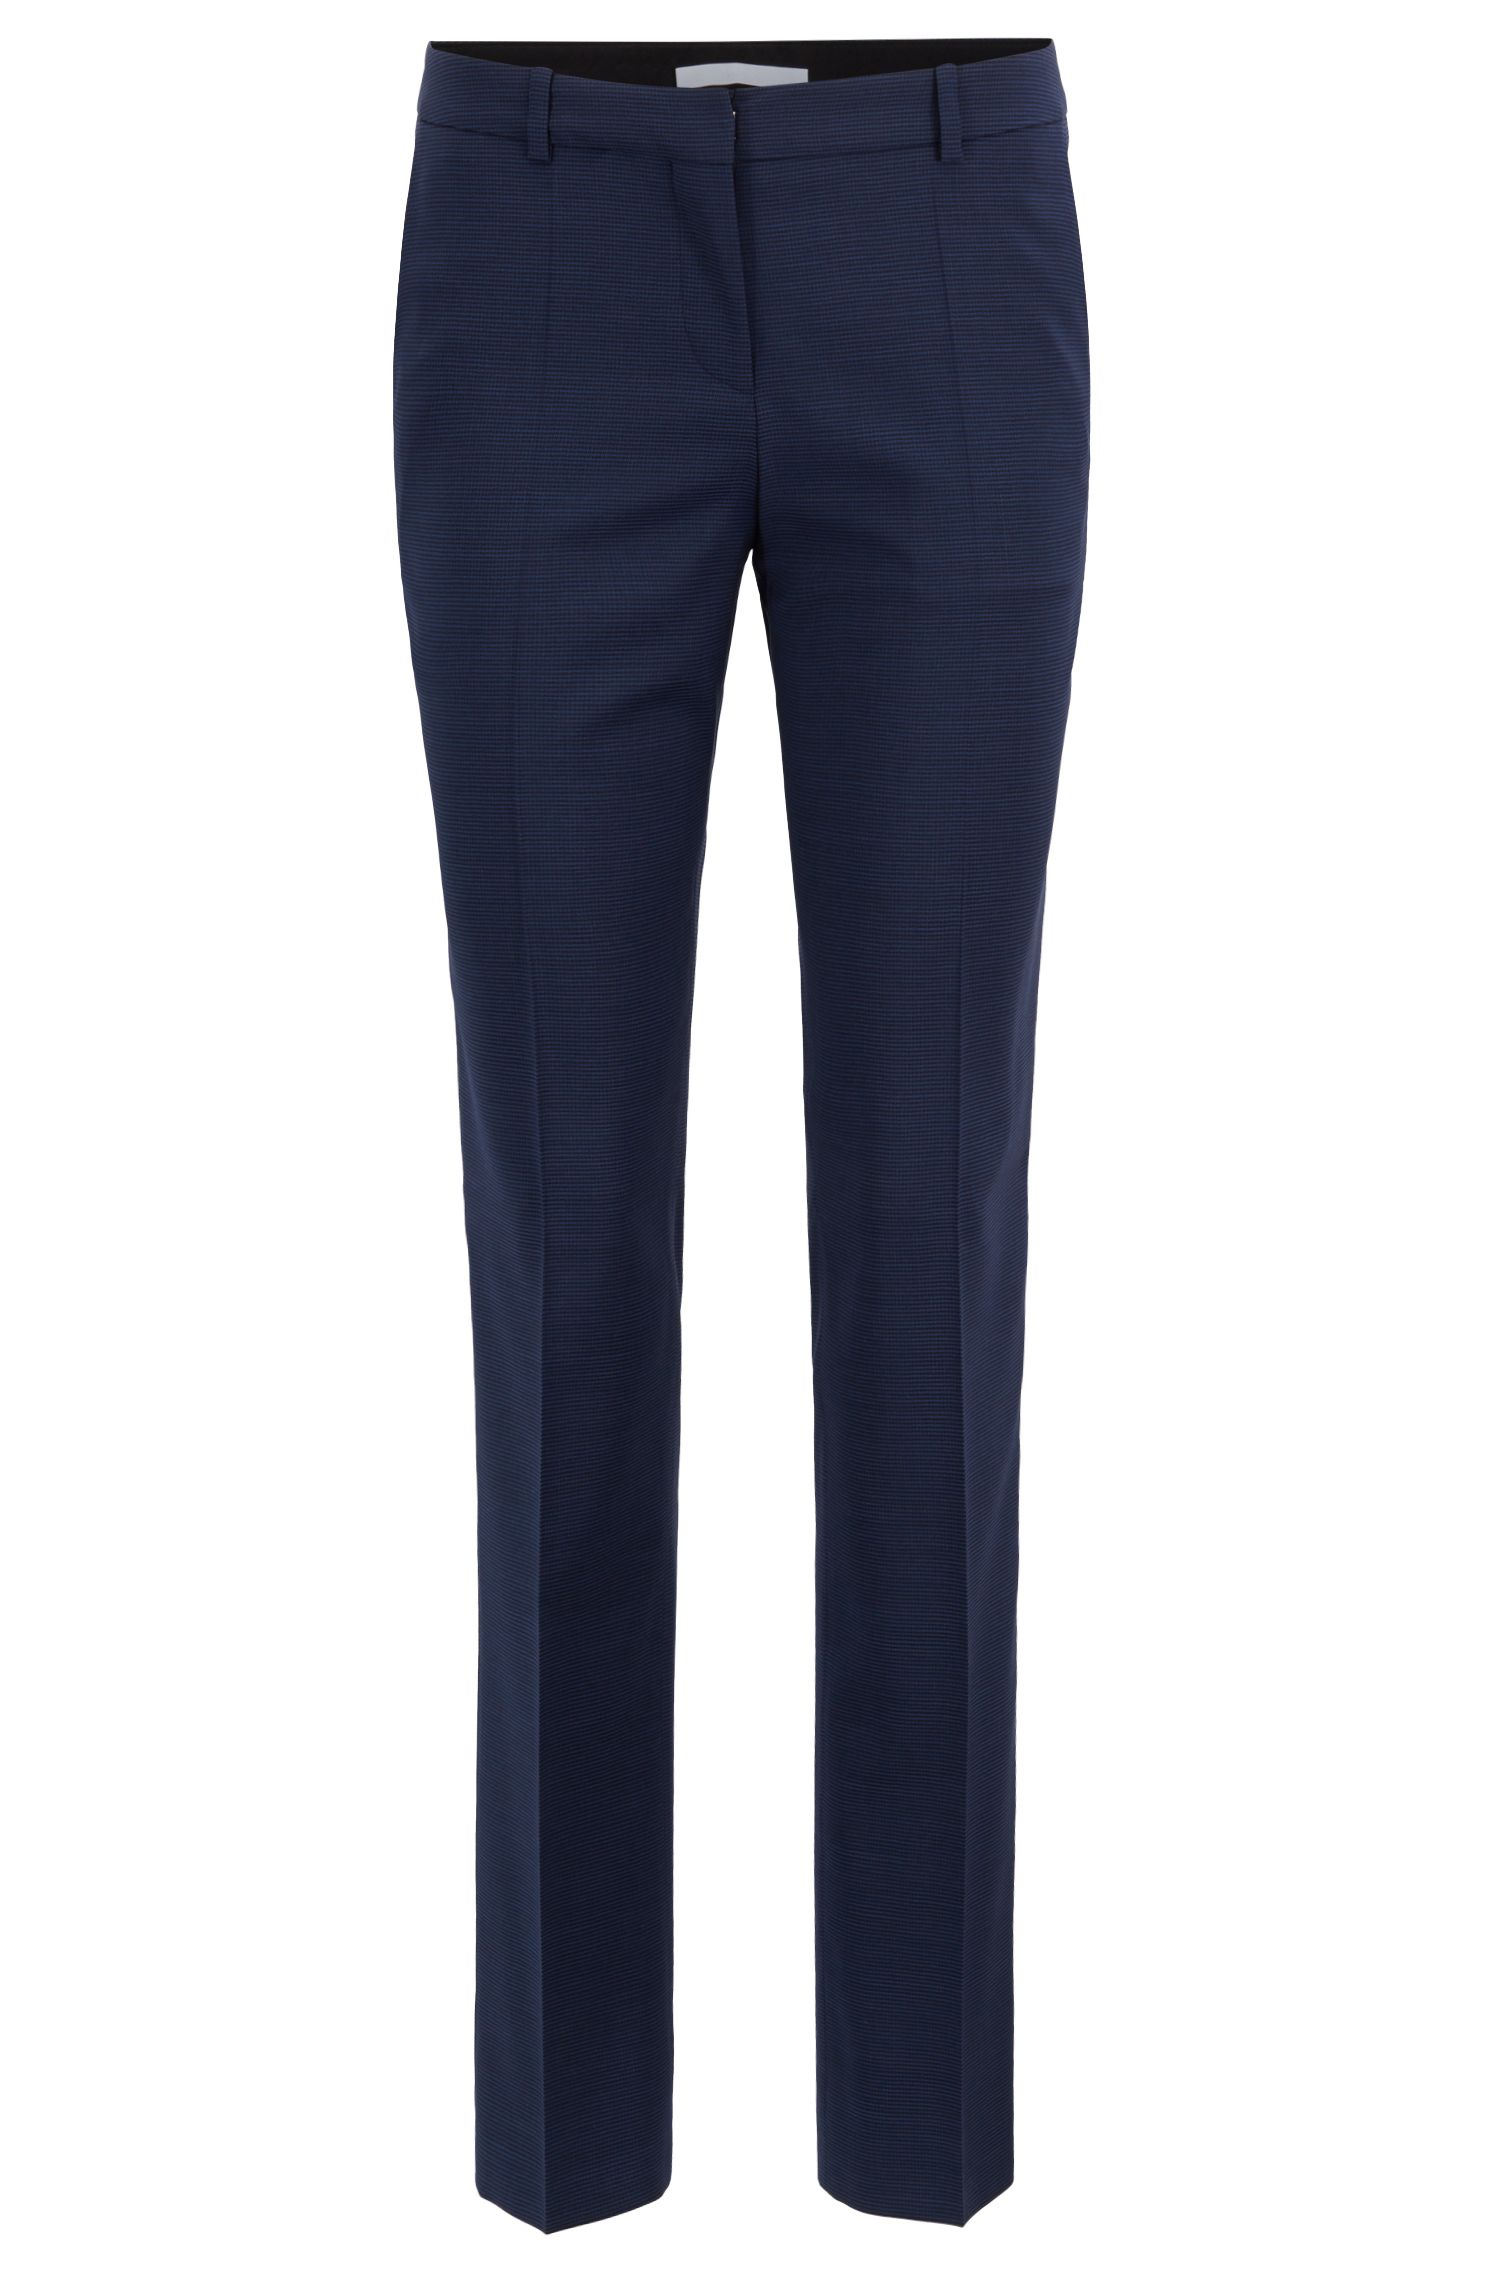 Slim-leg trousers in houndstooth Italian virgin wool, Patterned